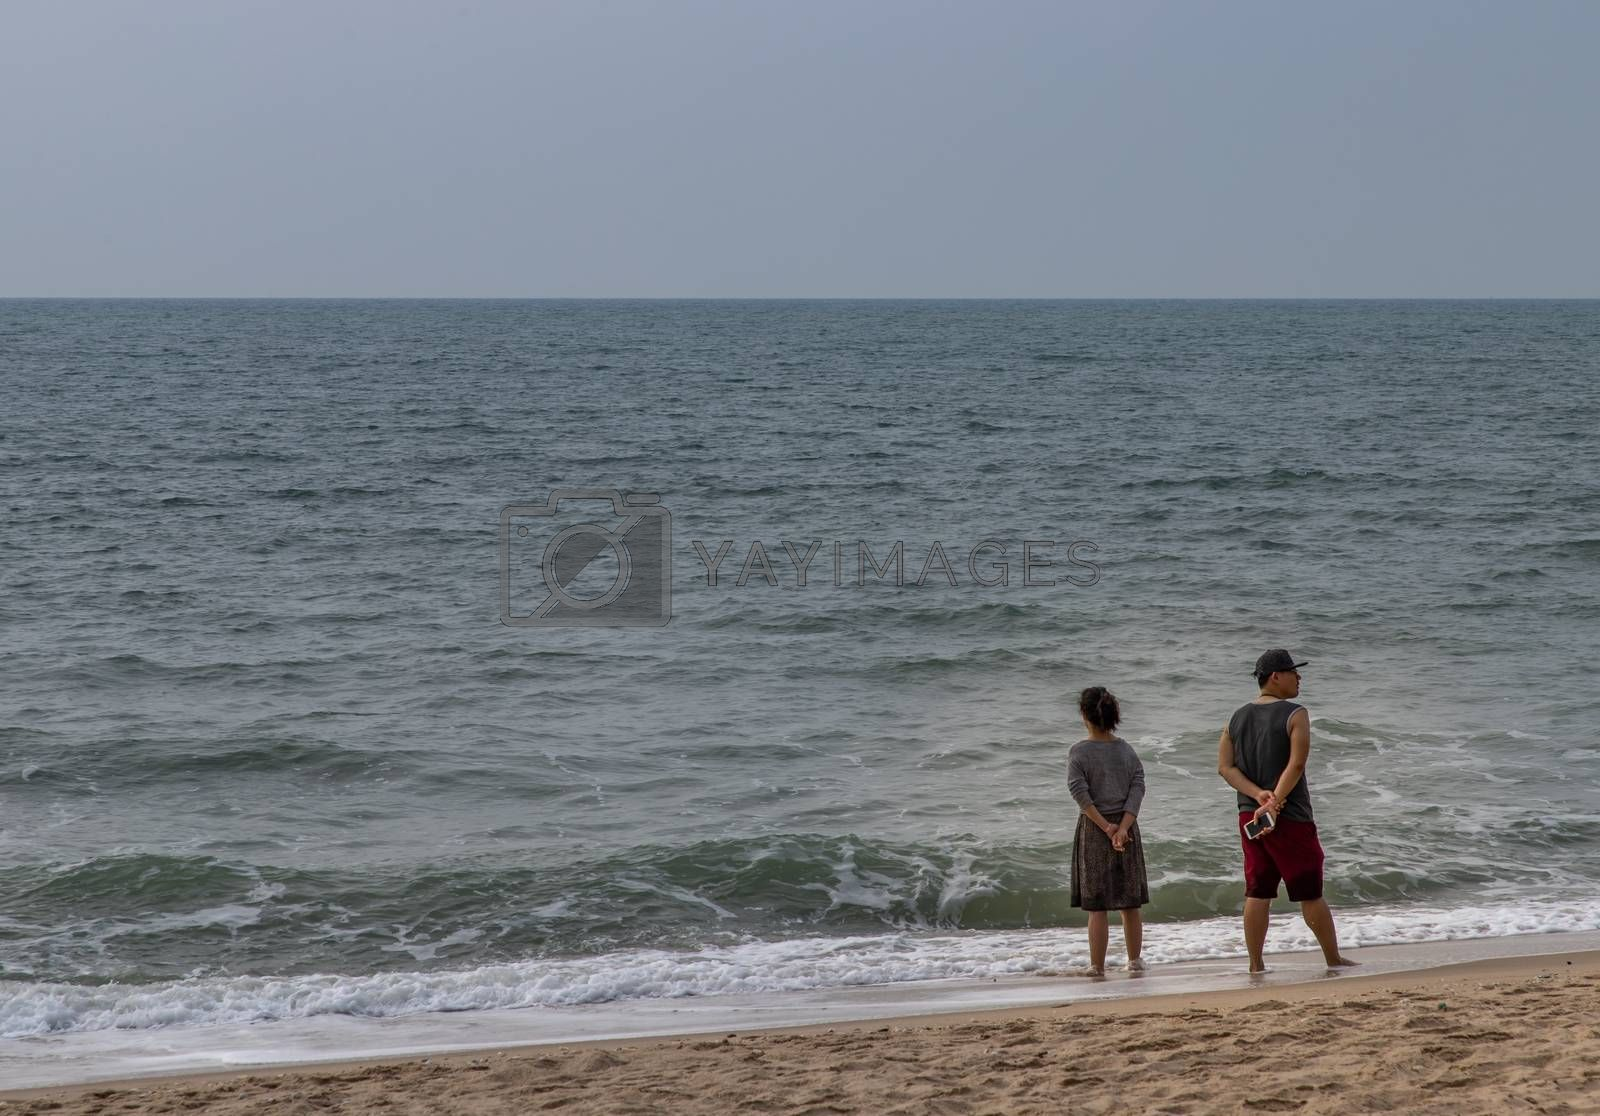 Phetchaburi,Thailand - Mar 15, 2020 : Rear view of tourist man and women standing on beach on a sunny day. Vacation trip. Selective focus.